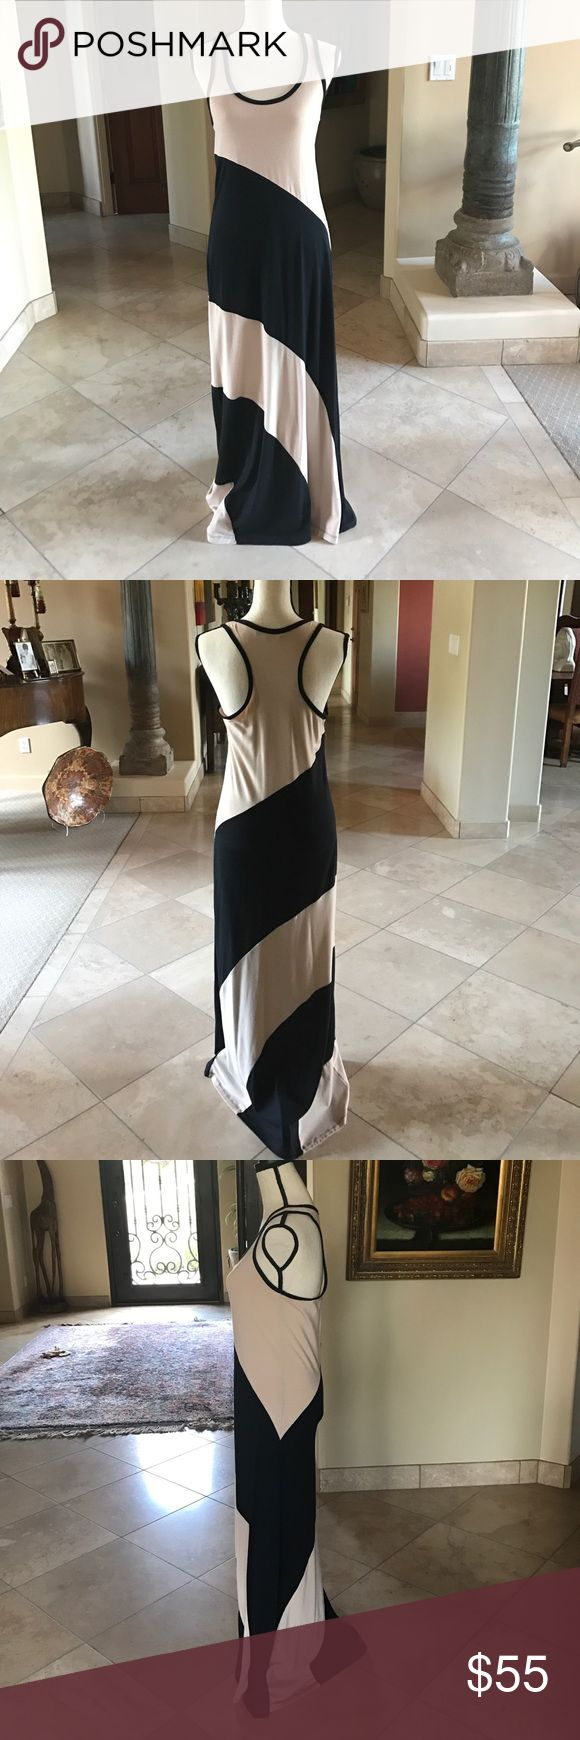 """Anatomie Maxi Dress Anatomie 2 tone black and camel maxi dress. Extremely flattering in. Bleach color hits in all the right places. I am 5'8"""" and the dress just skims the floor. Slight pilling on front. Anatomie Dresses Maxi"""